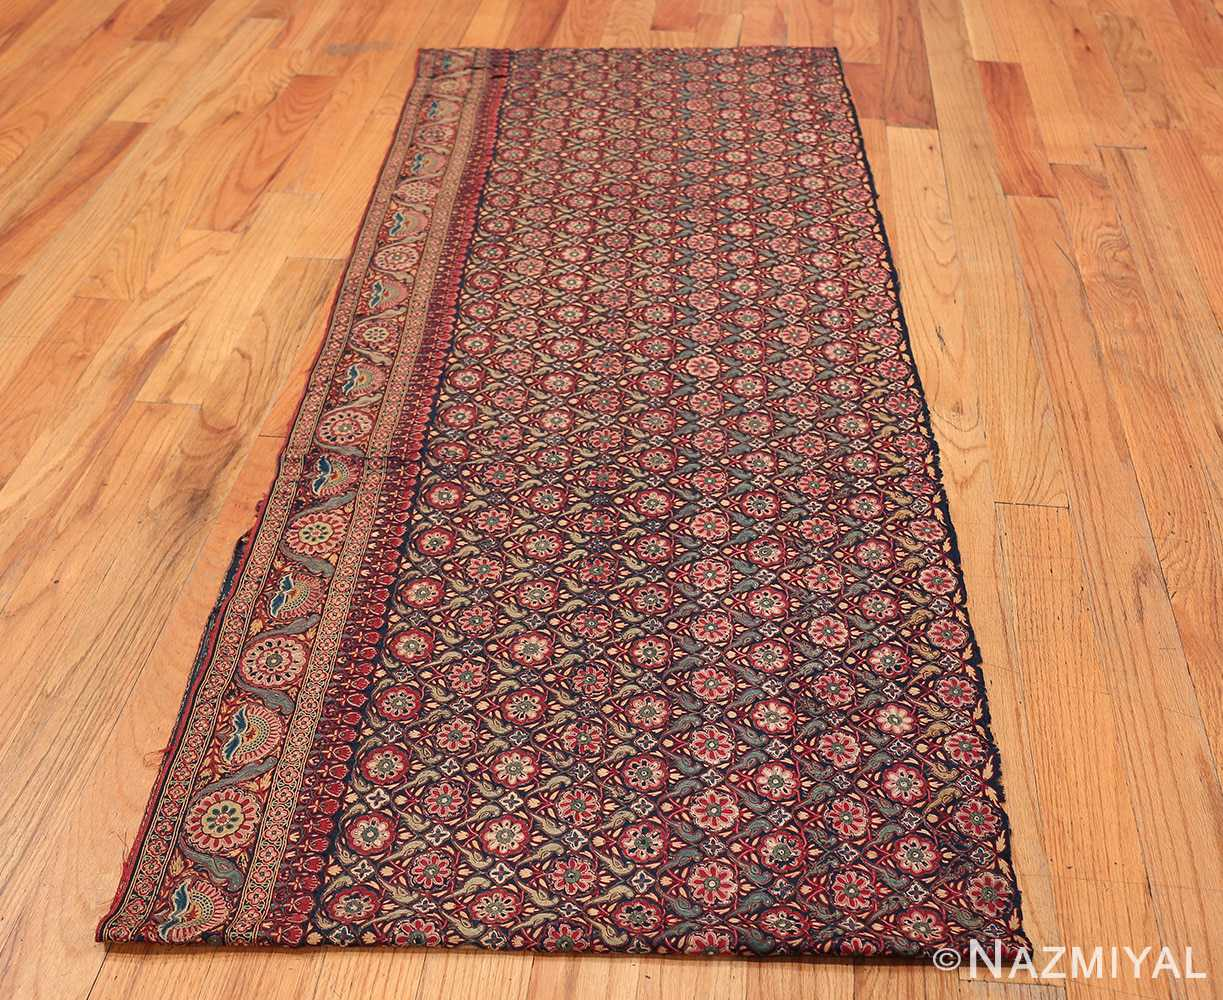 18th Century Indian Embroidery Textile 40364 Whole Design Nazmiyal